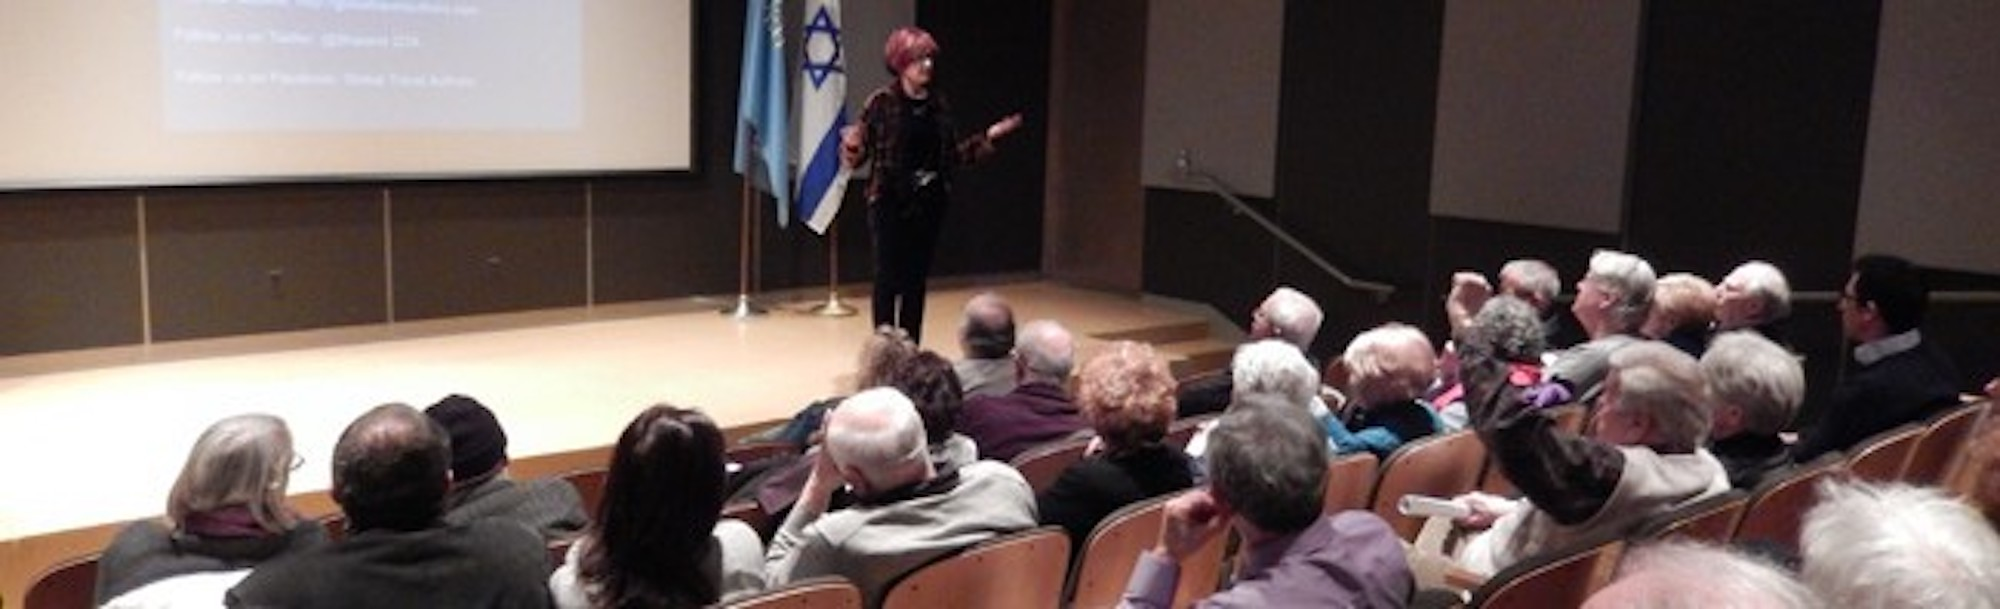 Irene Shaland presenting a lecture at the Maltz Museum of Jewish Heritage